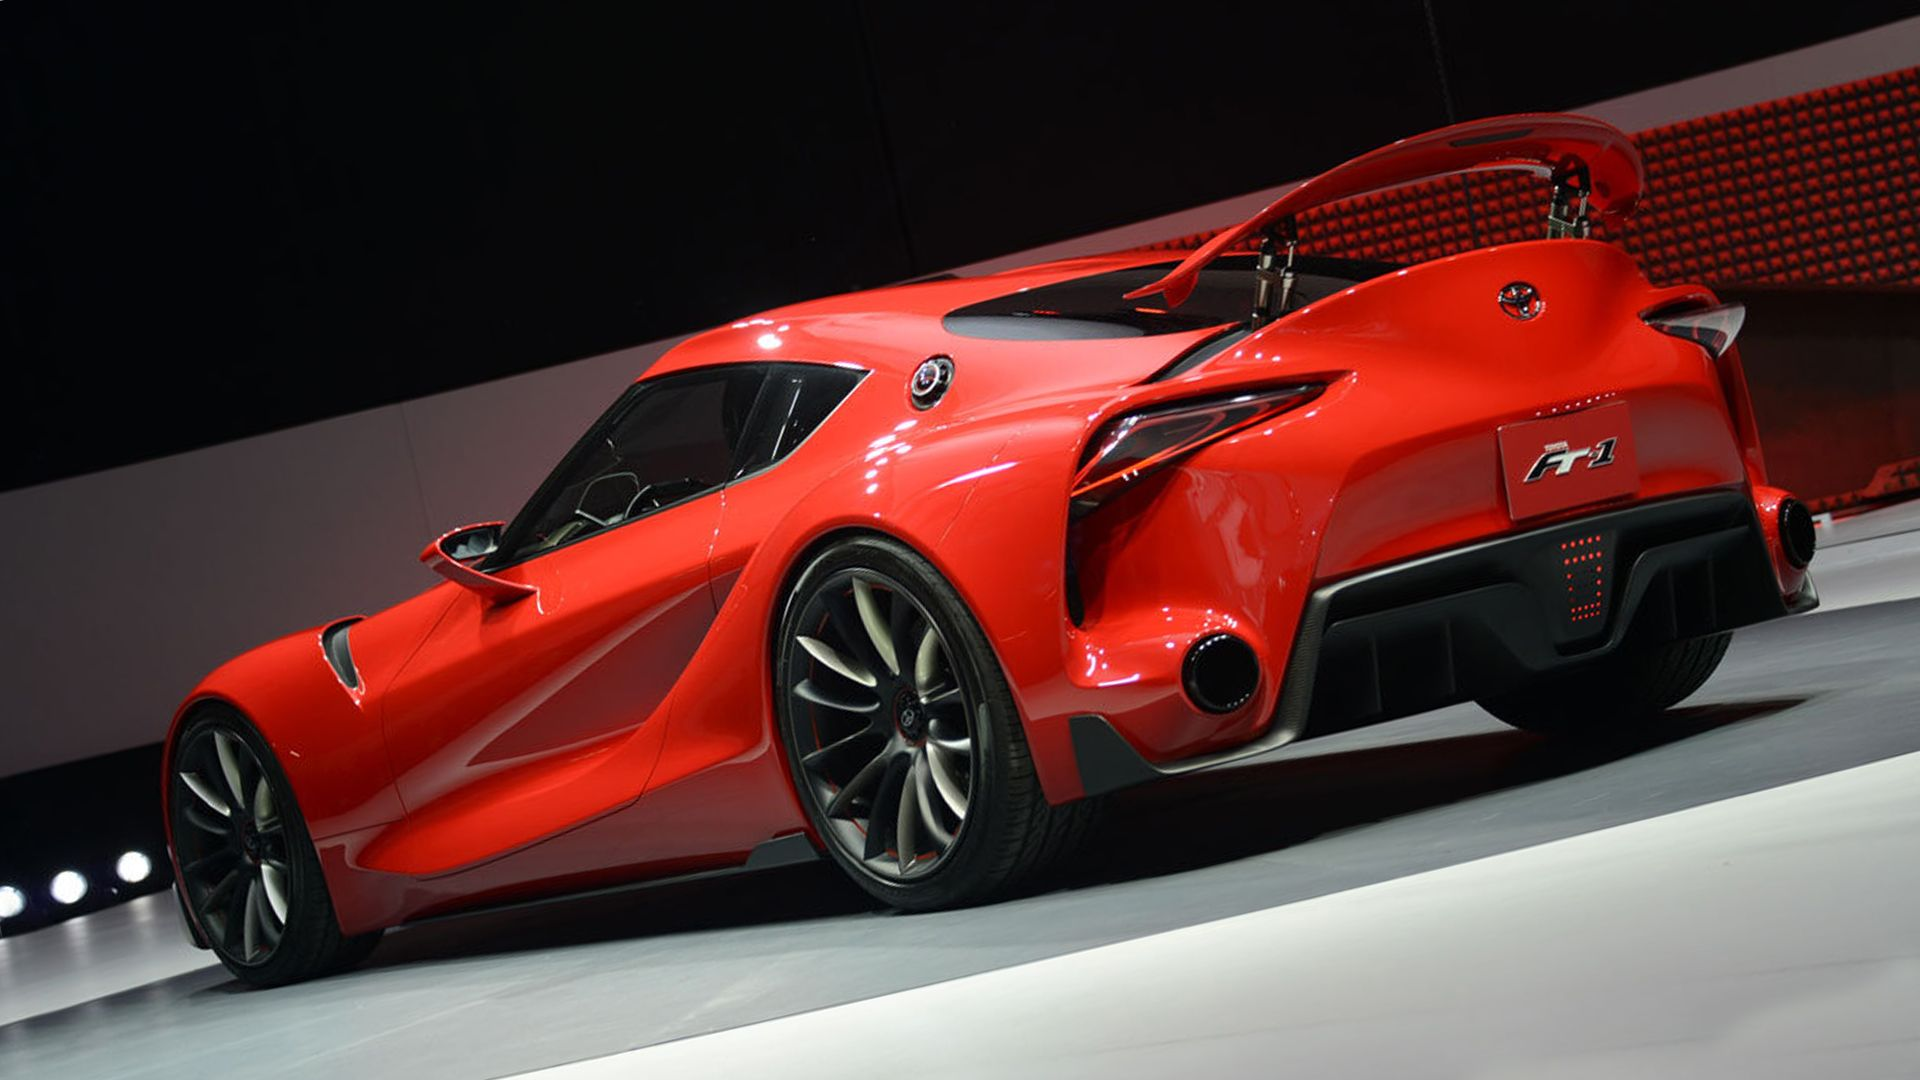 New 2019 Toyota FT 1 Exterior Changes